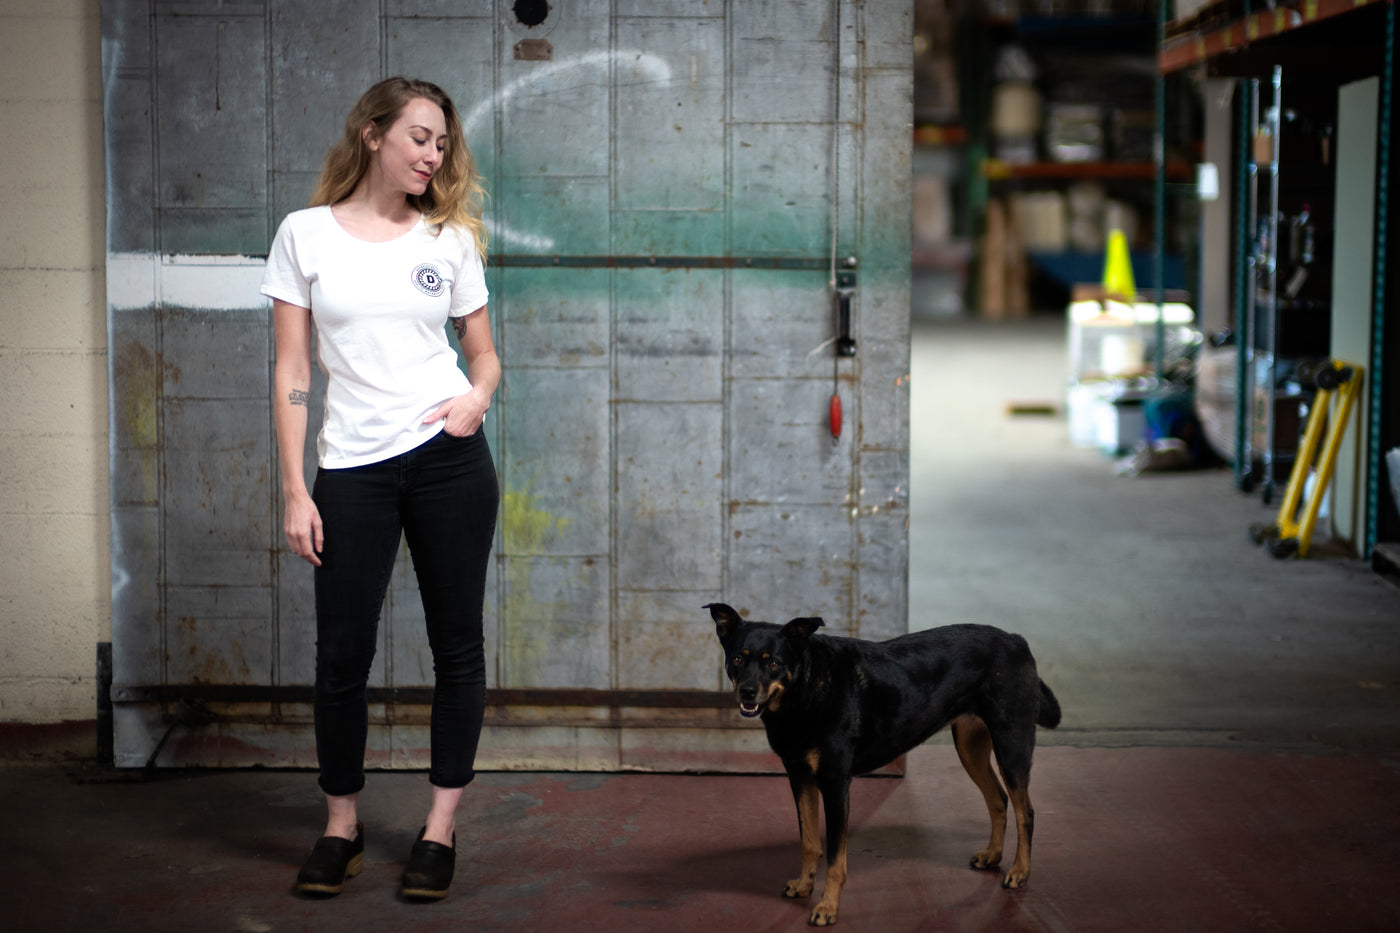 Daedalus Design | Women's Fine Scoop Shirt - Eggshell White + Doge